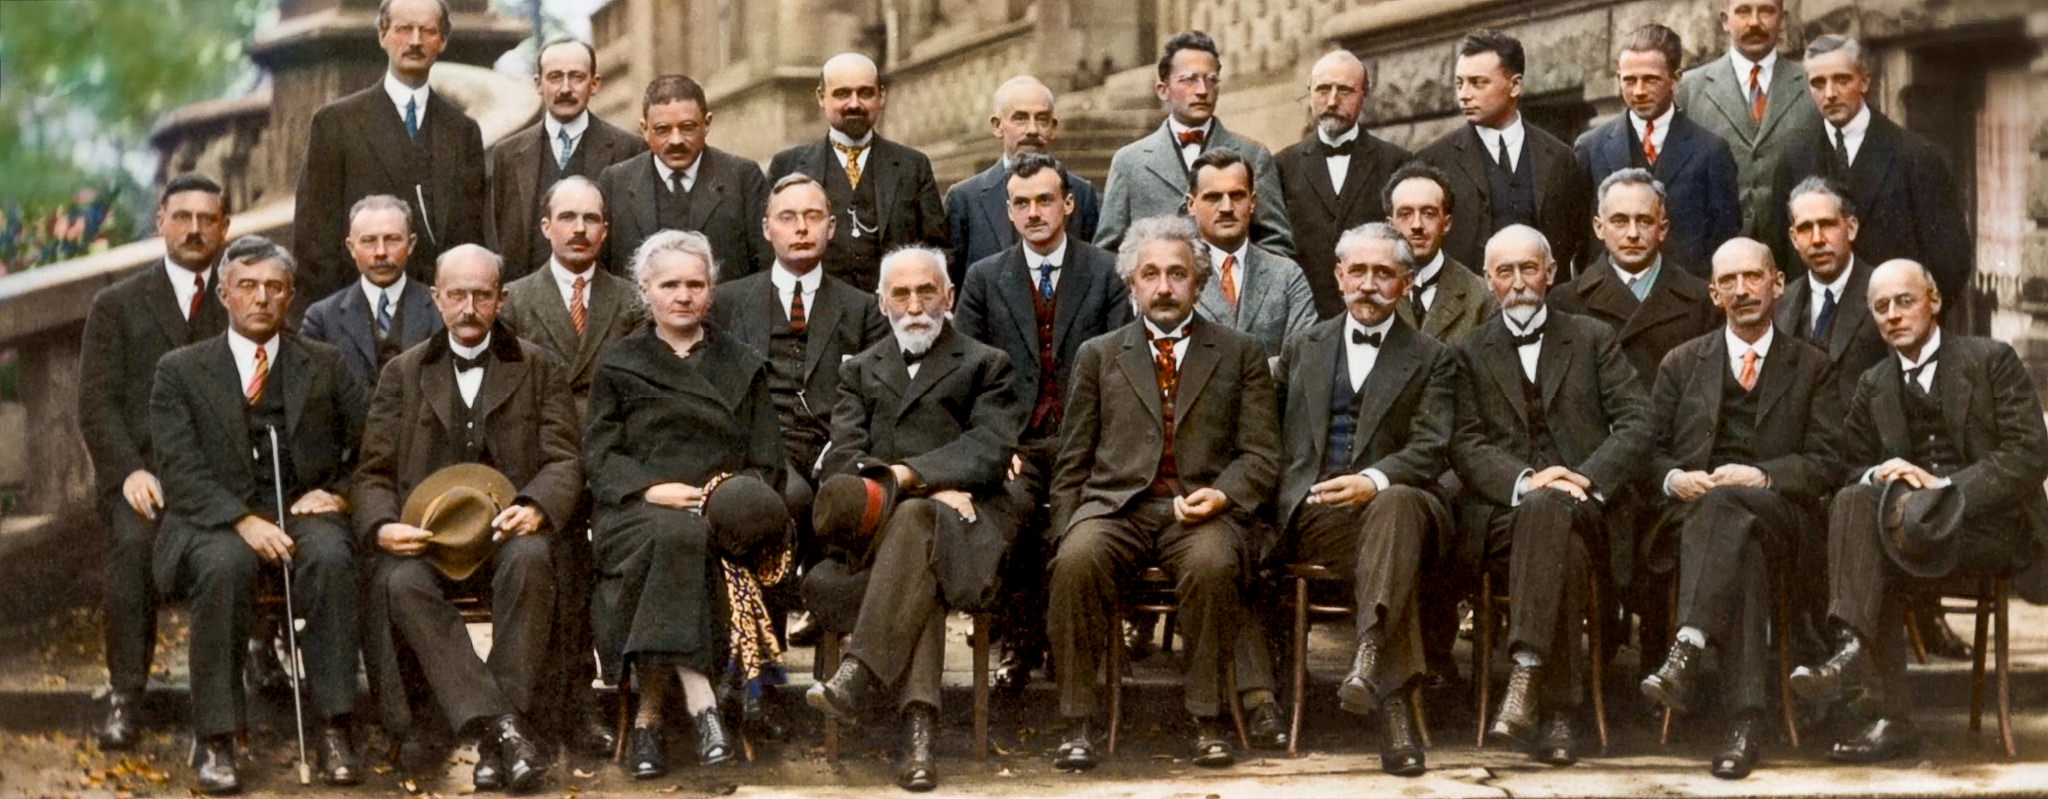 At the 1927 Solvay Conference: Werner Heisenberg, Wolfgang Pauli (back row, third and fourth from right, resp.) and Paul Dirac (middle row, fifth from right) were in attendance to discuss the new quantum theories. Enrico Fermi attended the next Solvay Conference, in 1930. Credit: iharsten/Flickr, CC BY 2.0